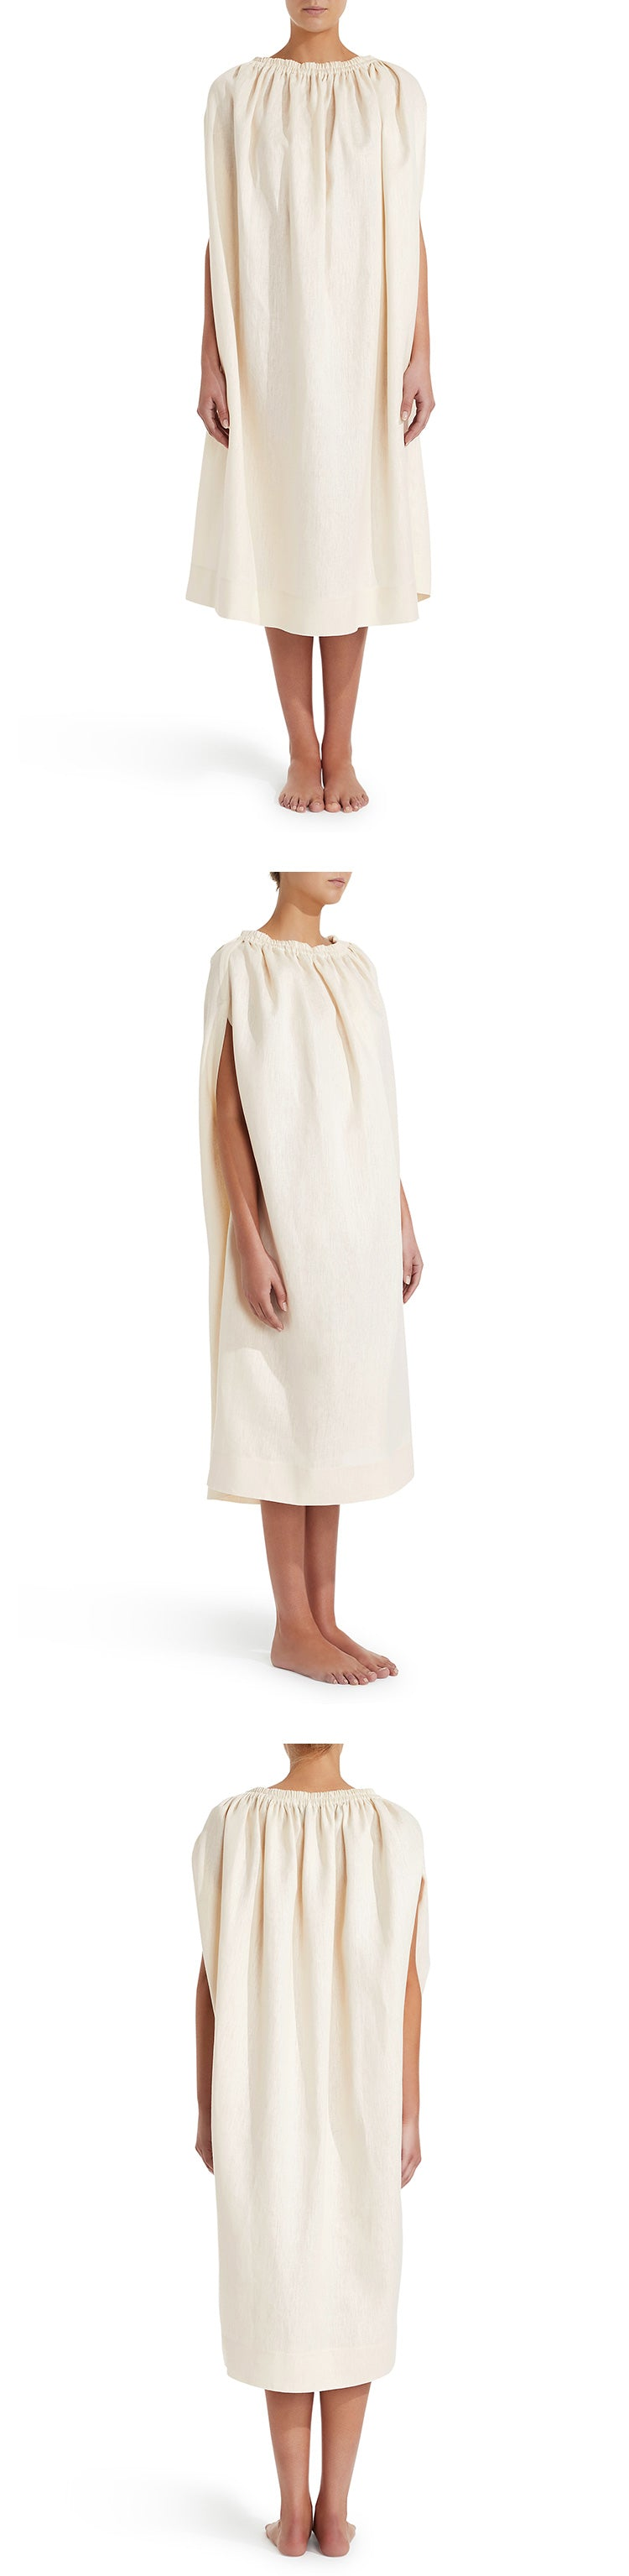 The Cocoon Dress